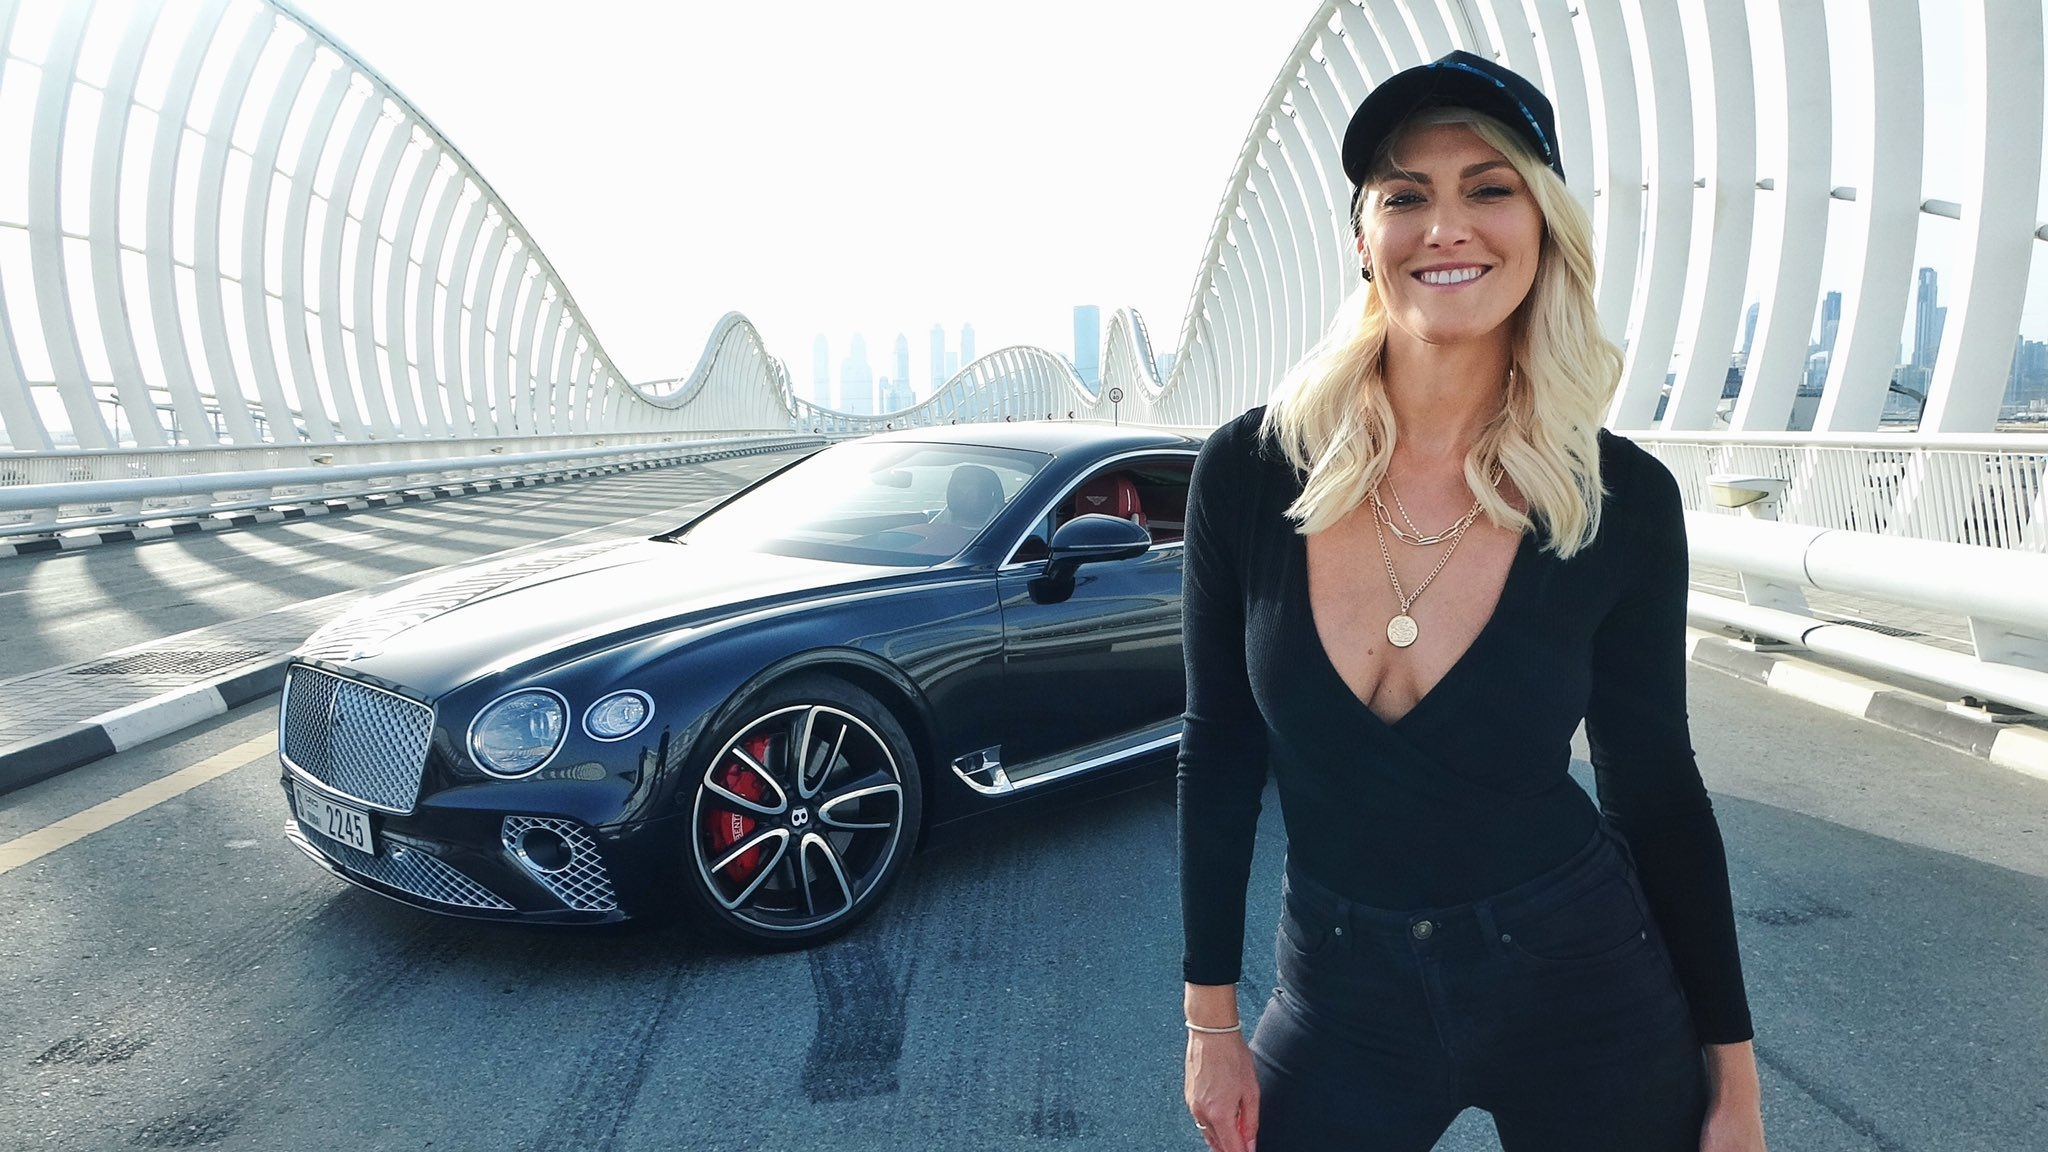 9 Times Alex The Supercar Blondie Left Us In Absolute Motoring Awe In 2020